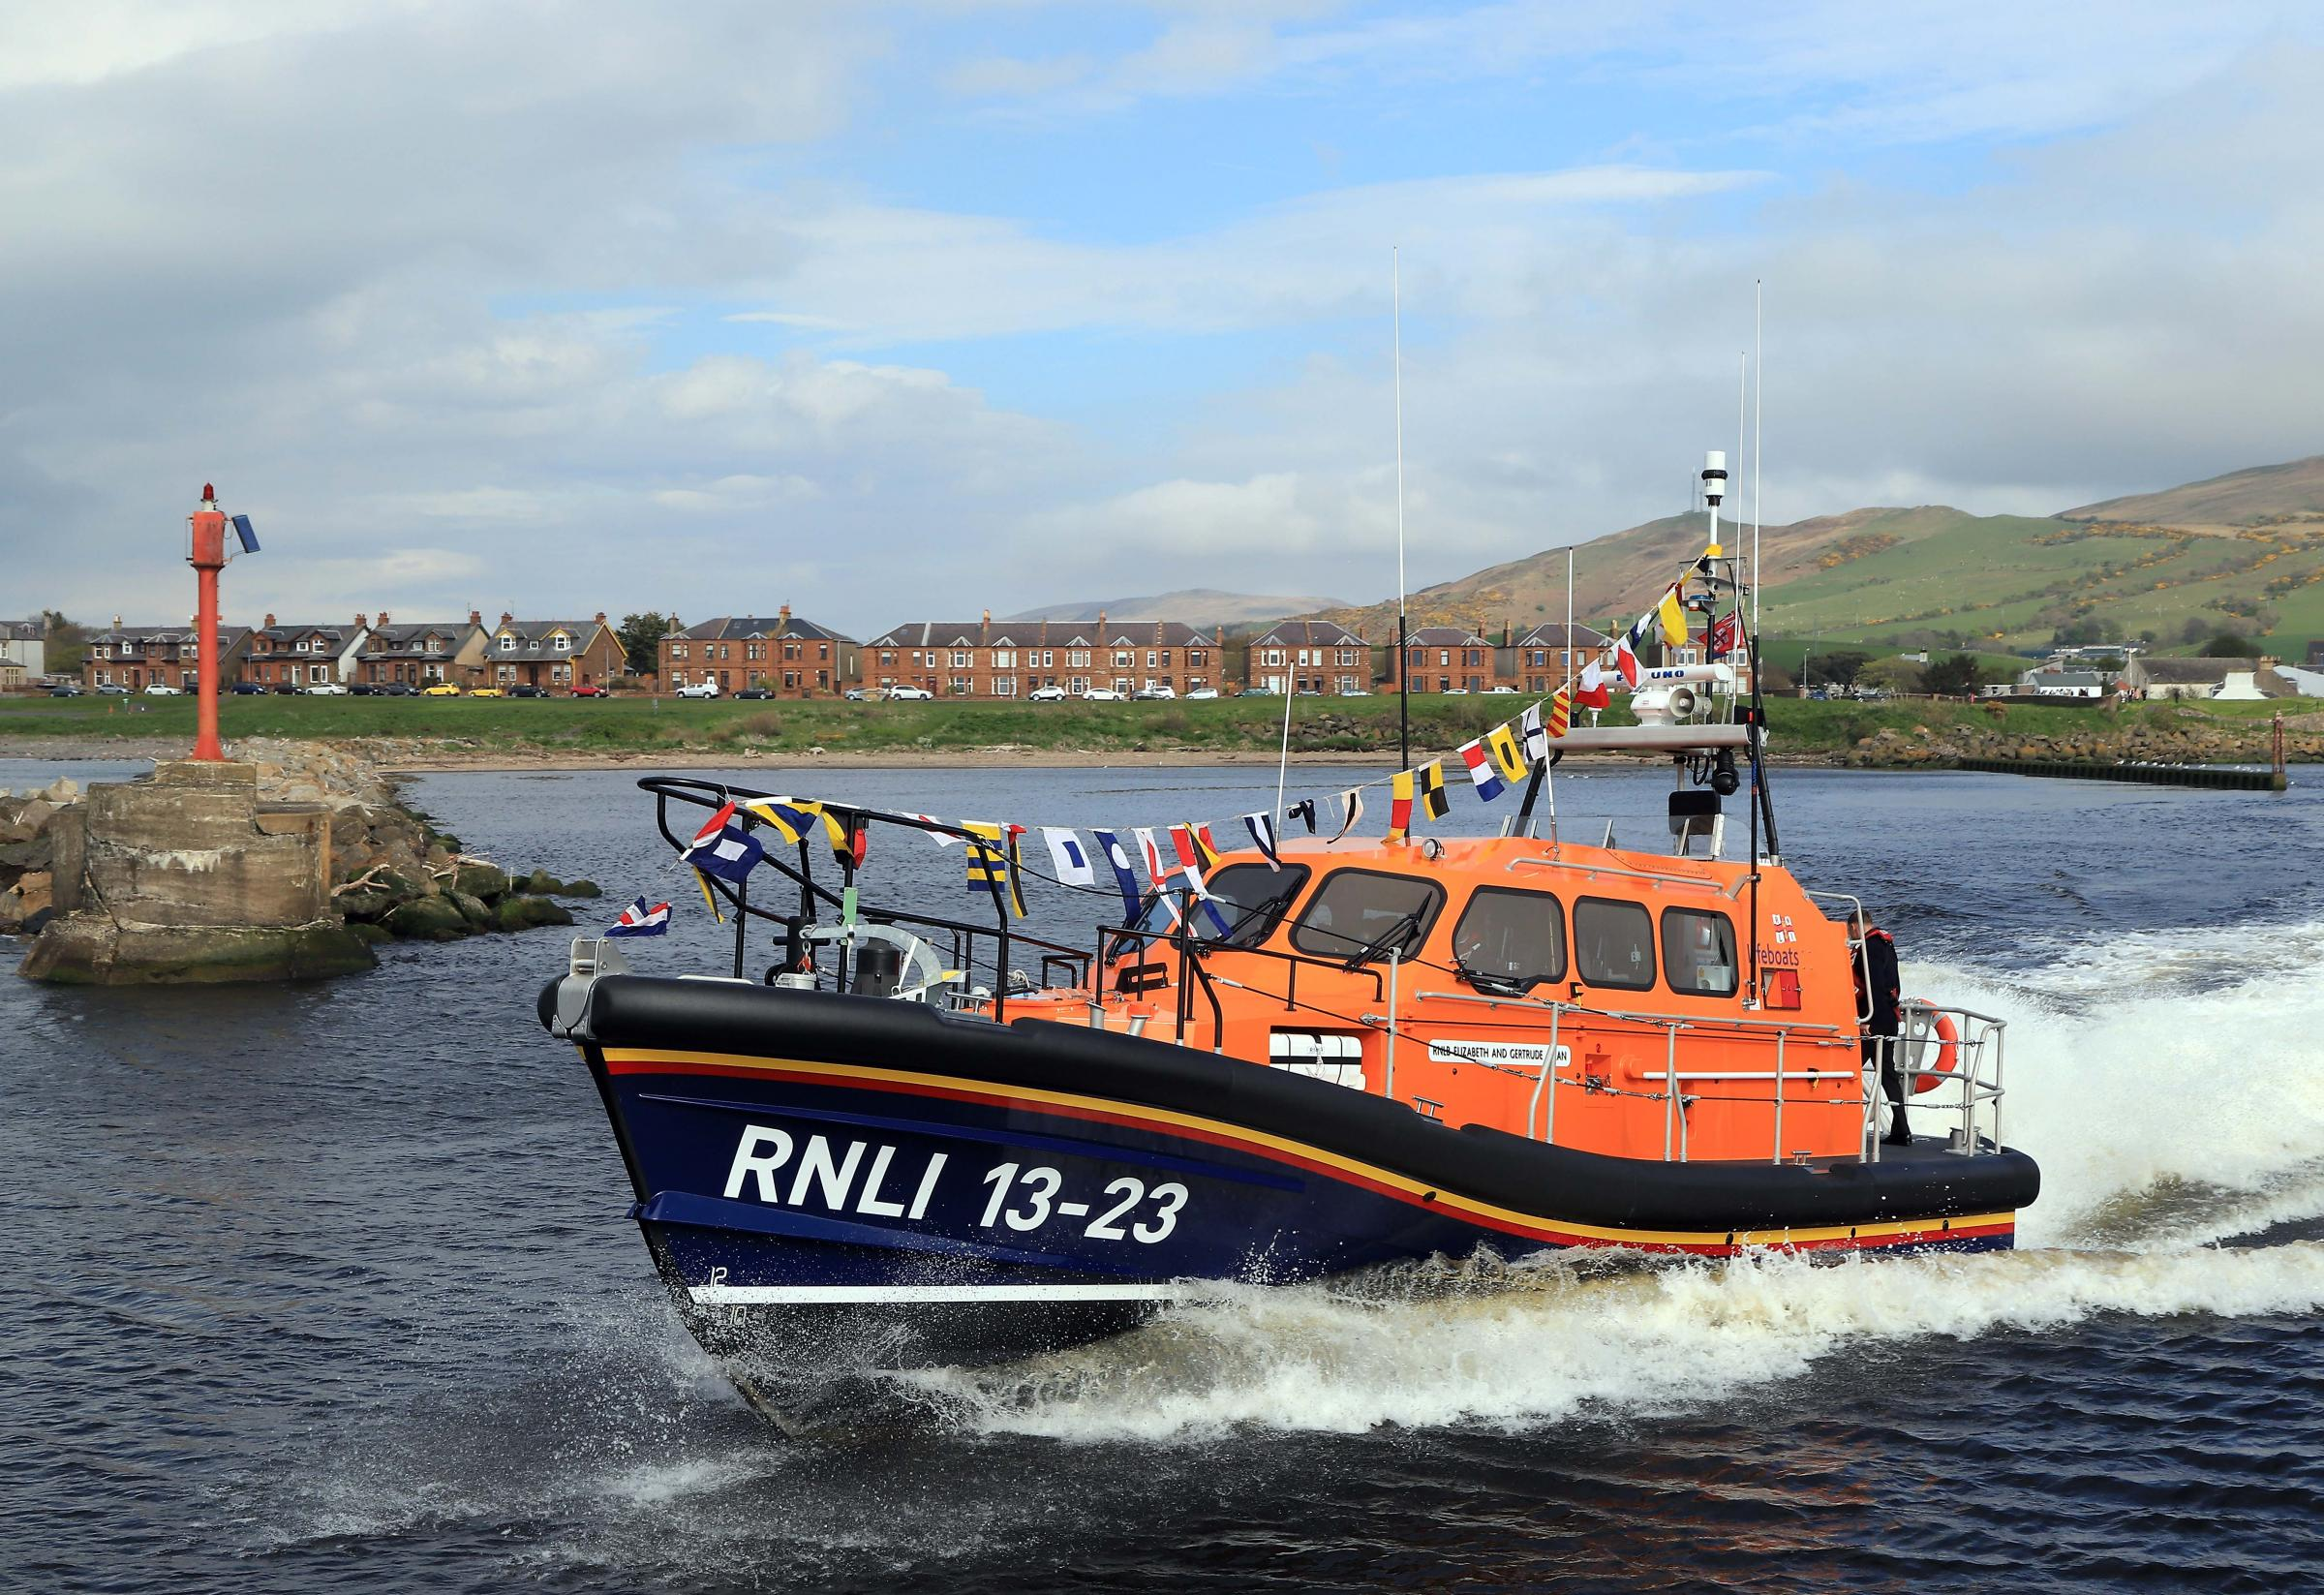 Girvan lifeboat officially welcomed